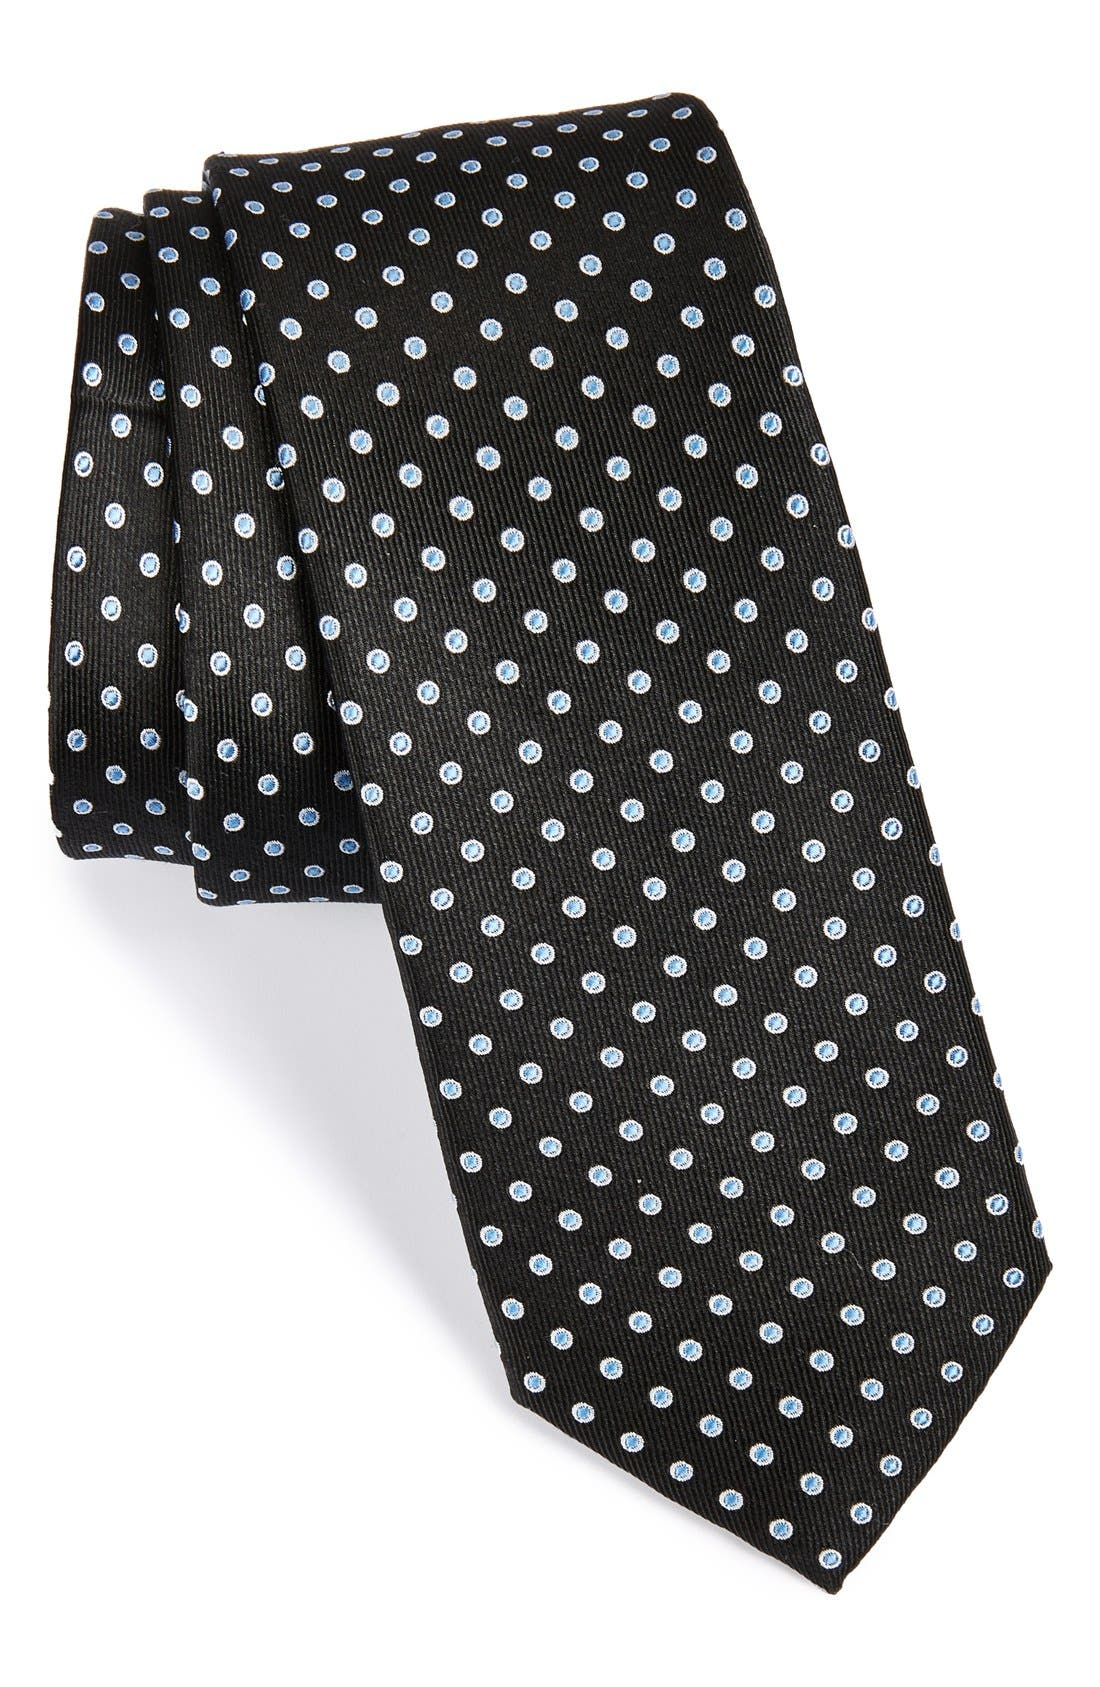 Main Image - 1901 'Grand Dot' Woven Silk Tie